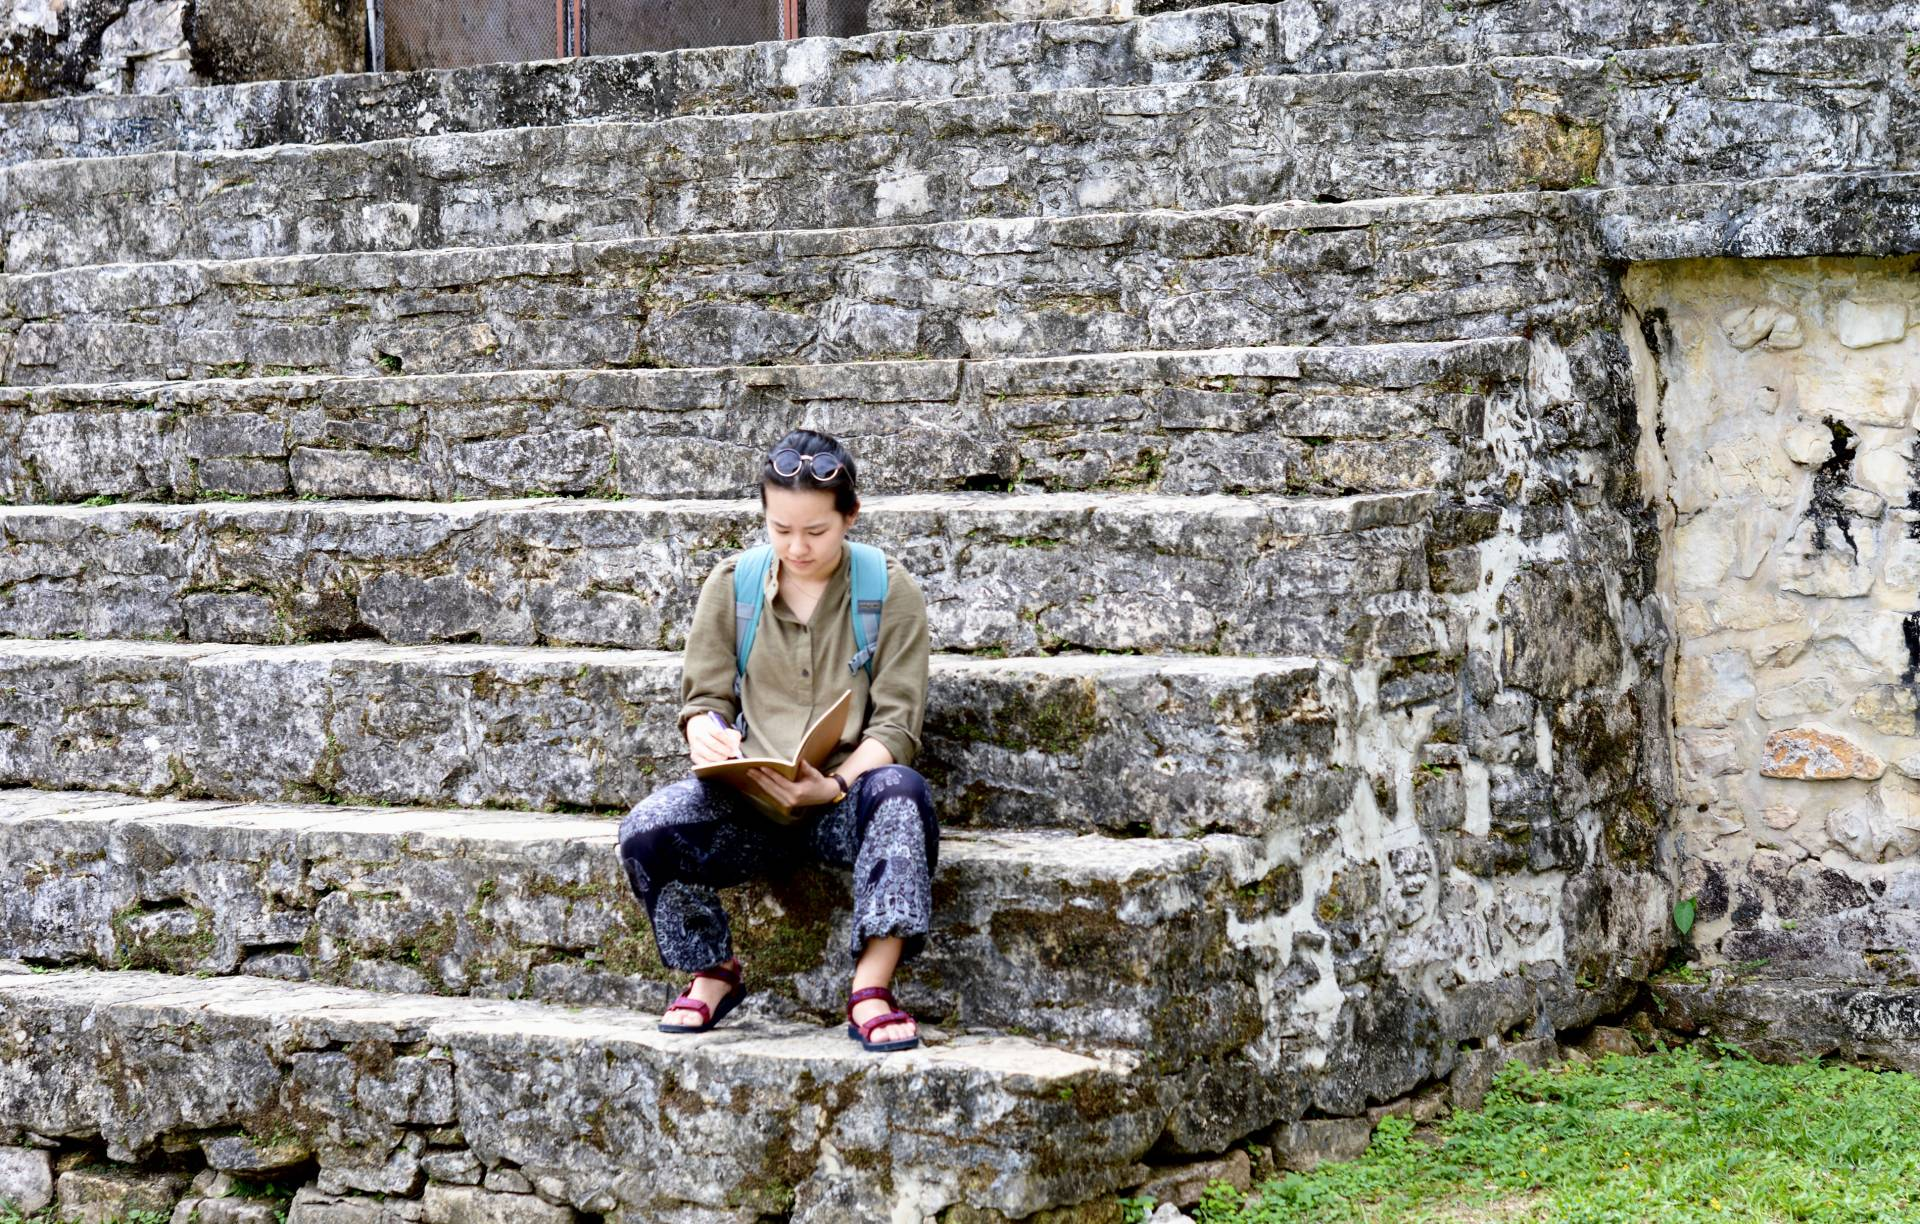 Crystal Wang sketching in the East Court of Palenque's Palace